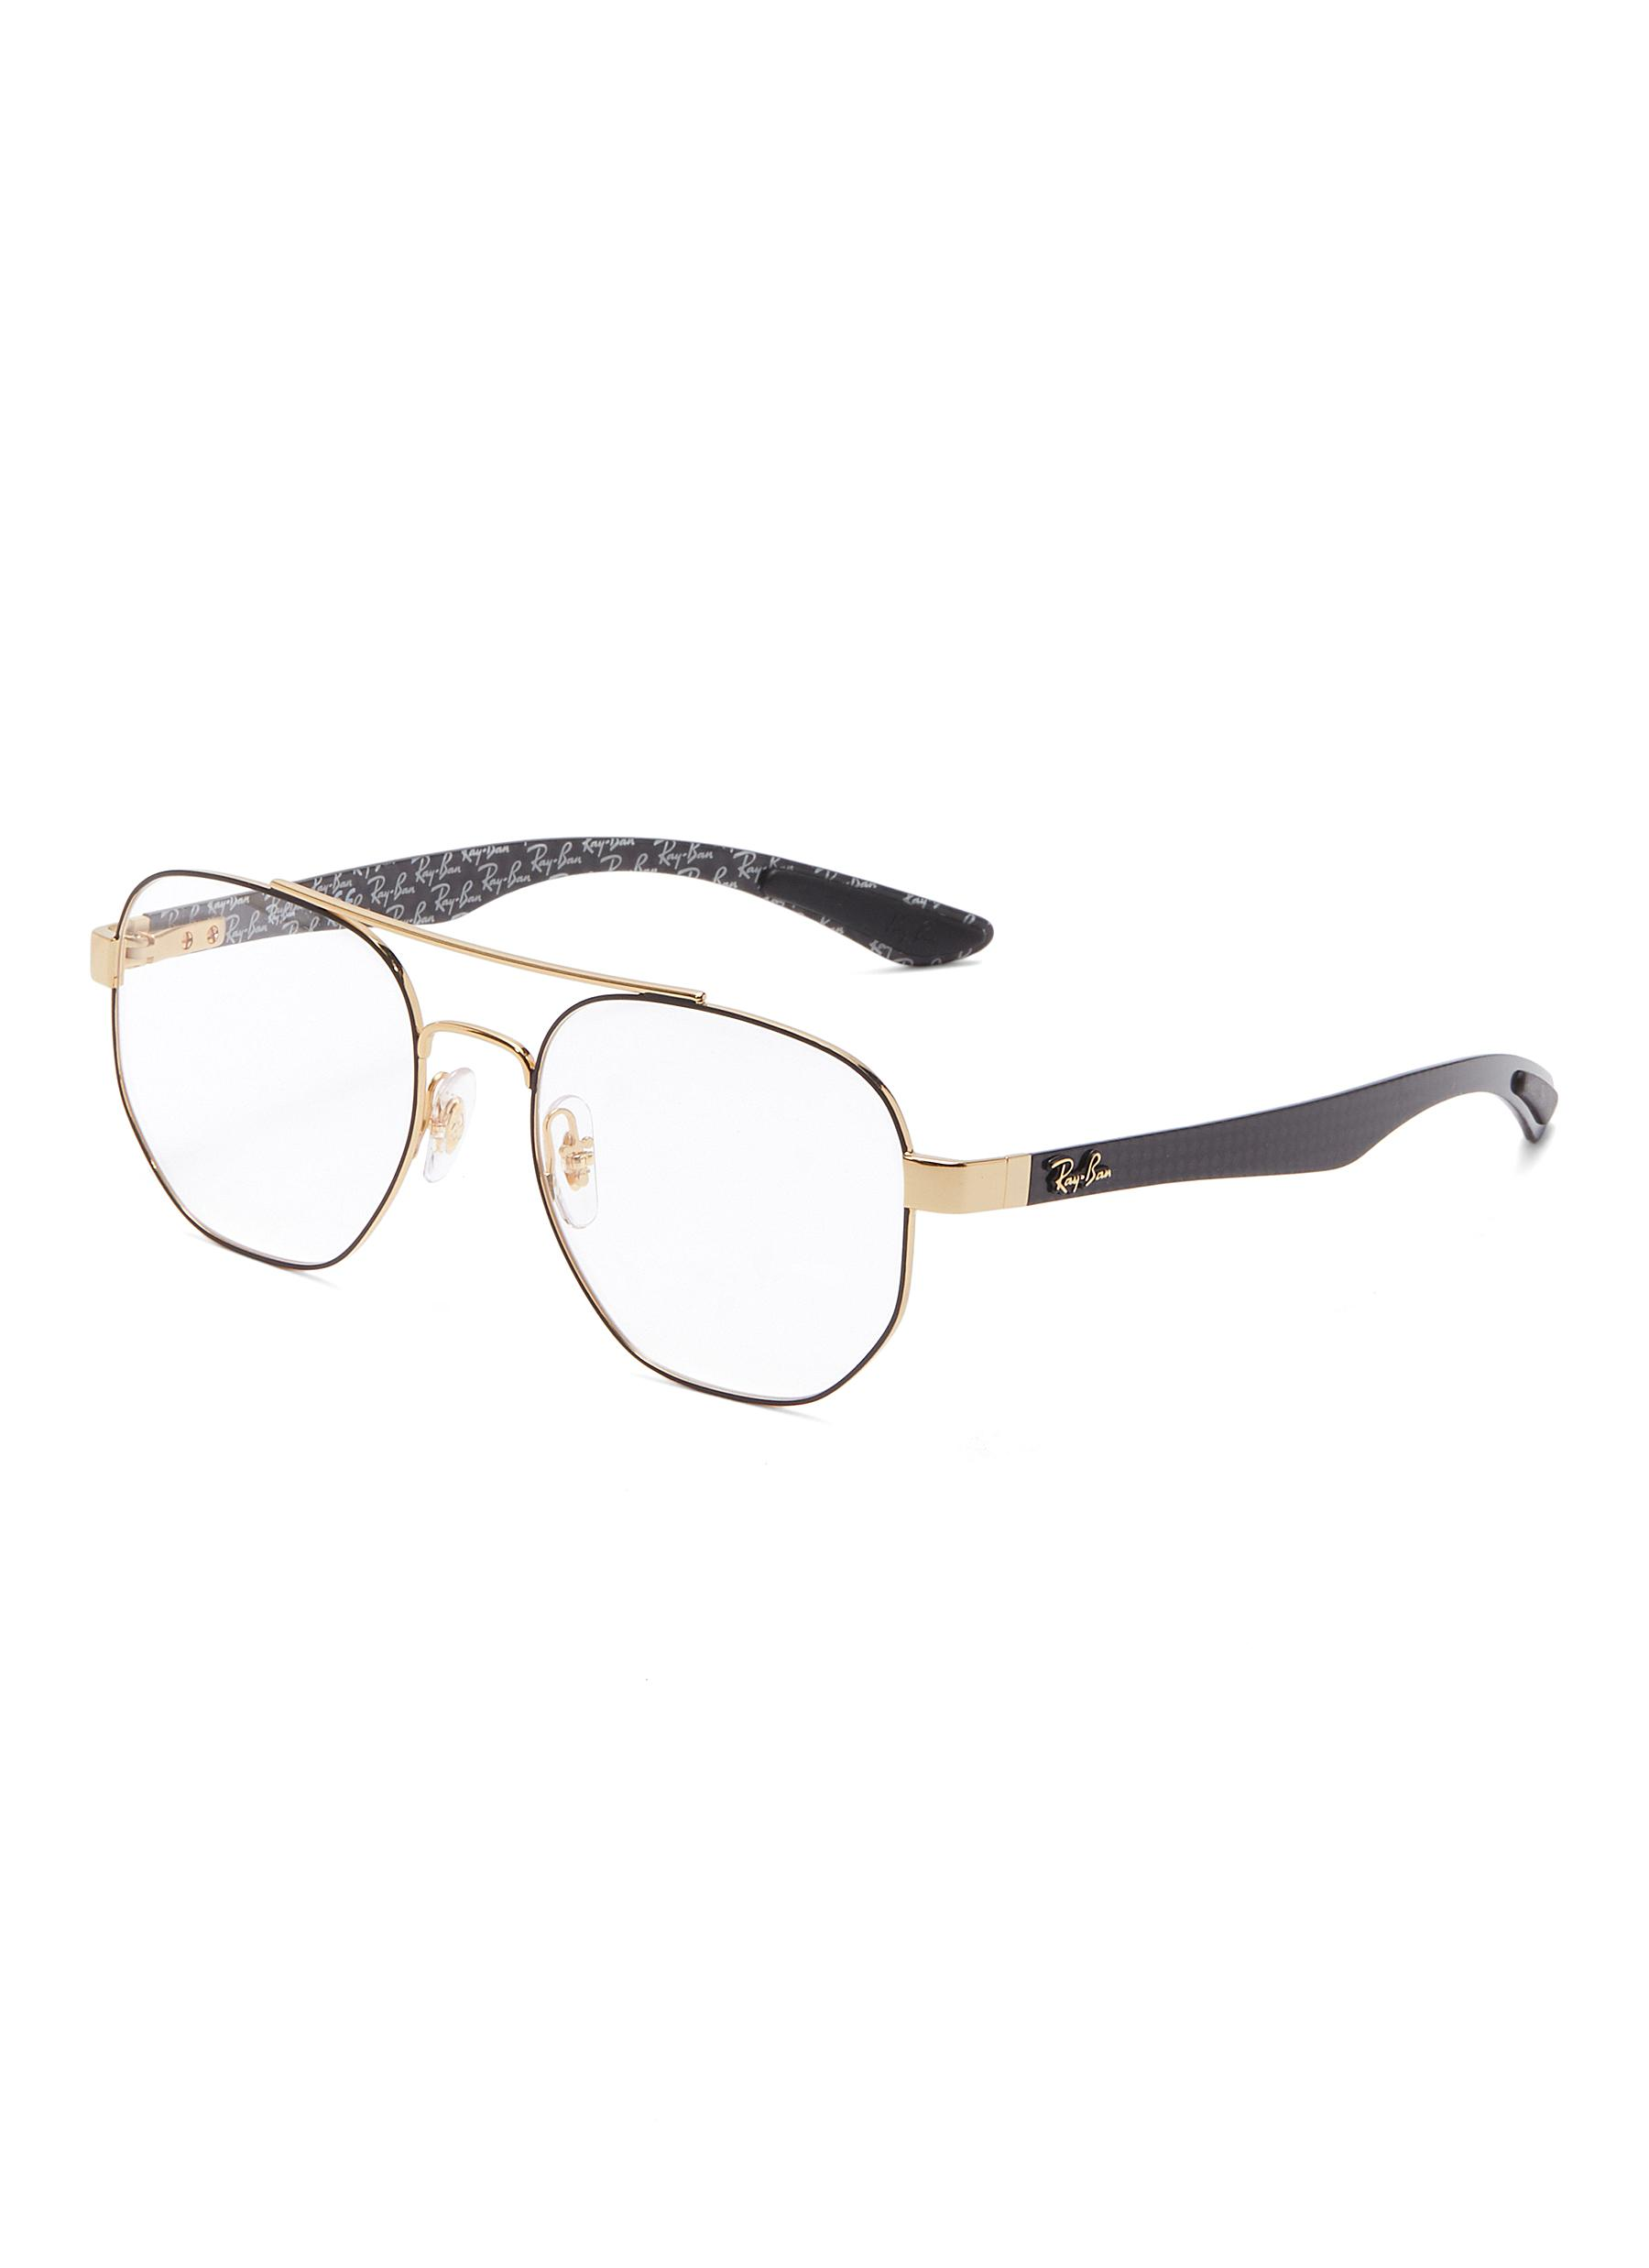 △ Ray-Ban 'Rx8418' Contrast Temple Metal Square Optical Glasses  US$205 (~HK$1,608)